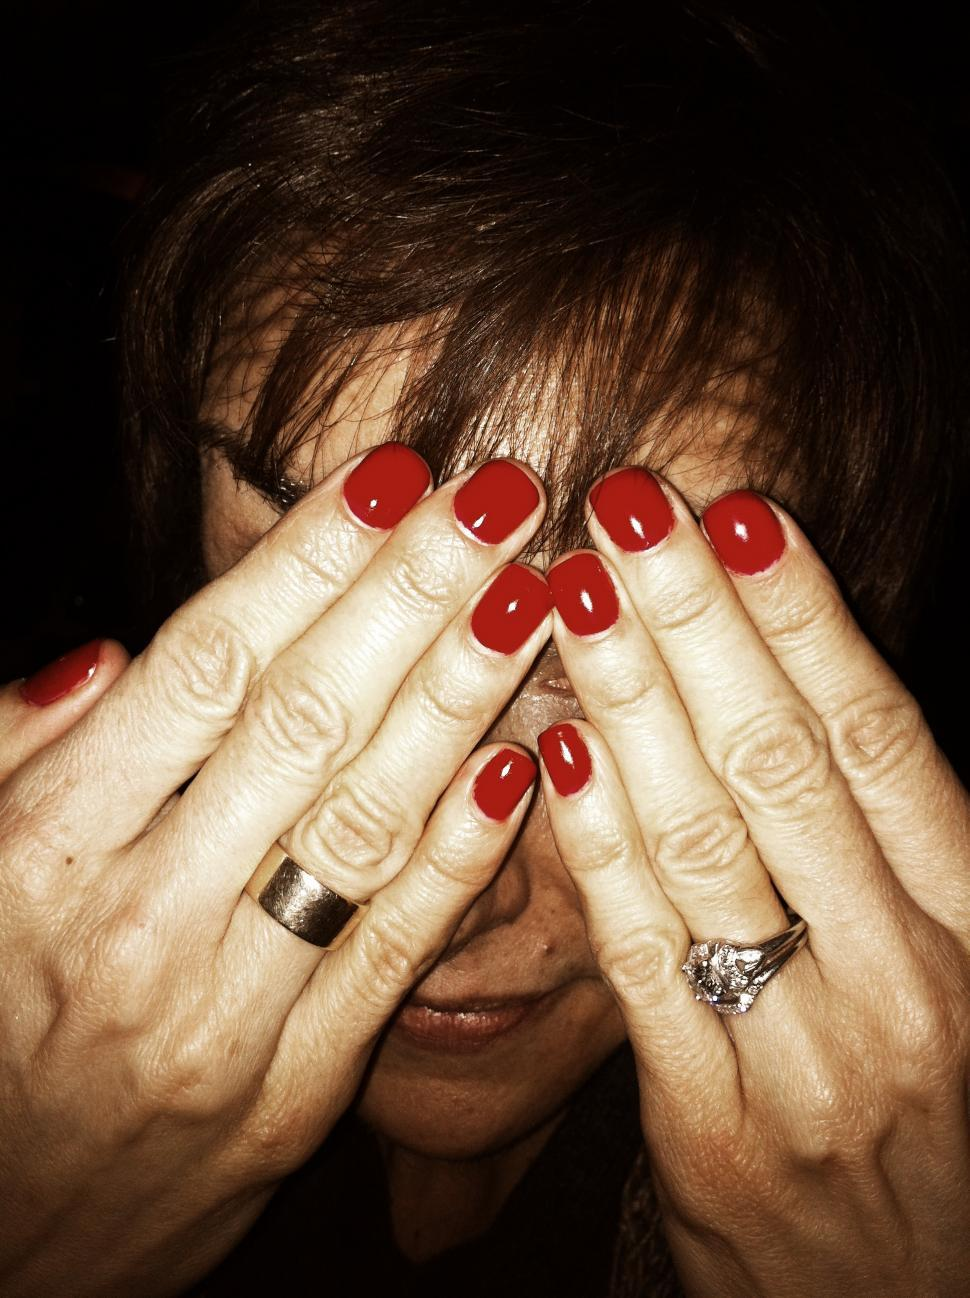 Download Free Stock HD Photo of Woman Hiding Behind Manicure Online